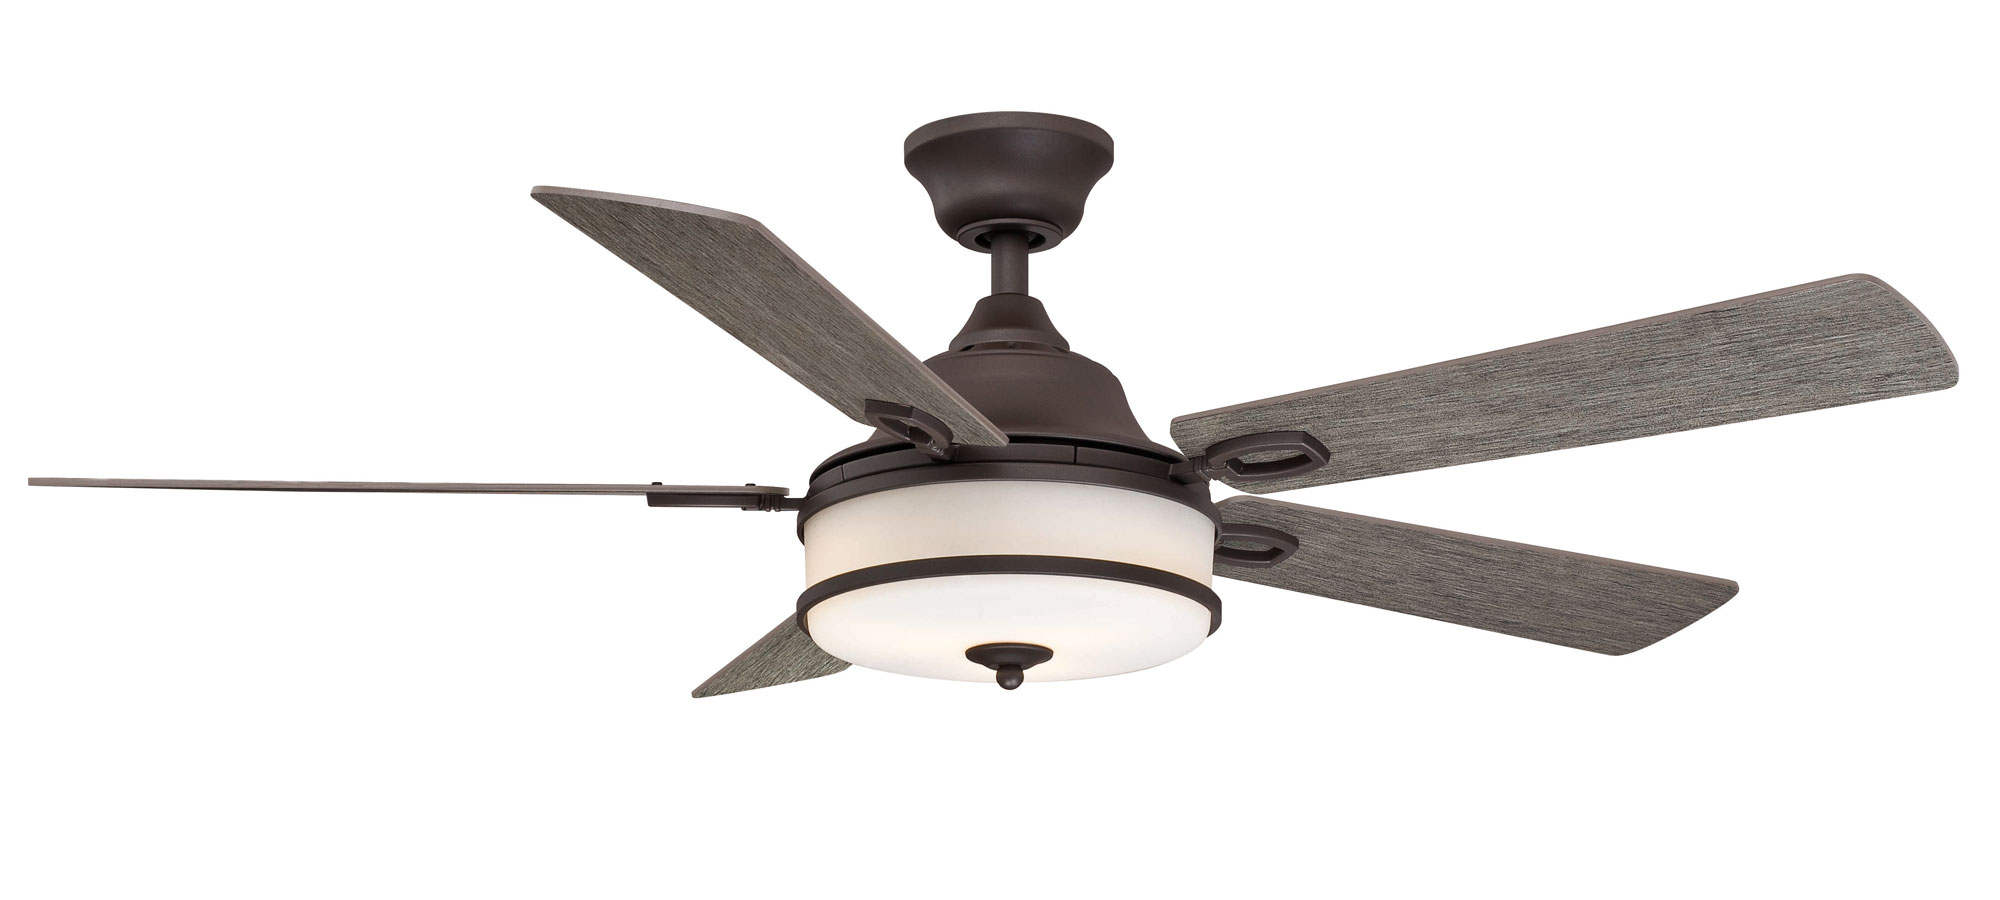 Stafford Ceiling Fan With Light By